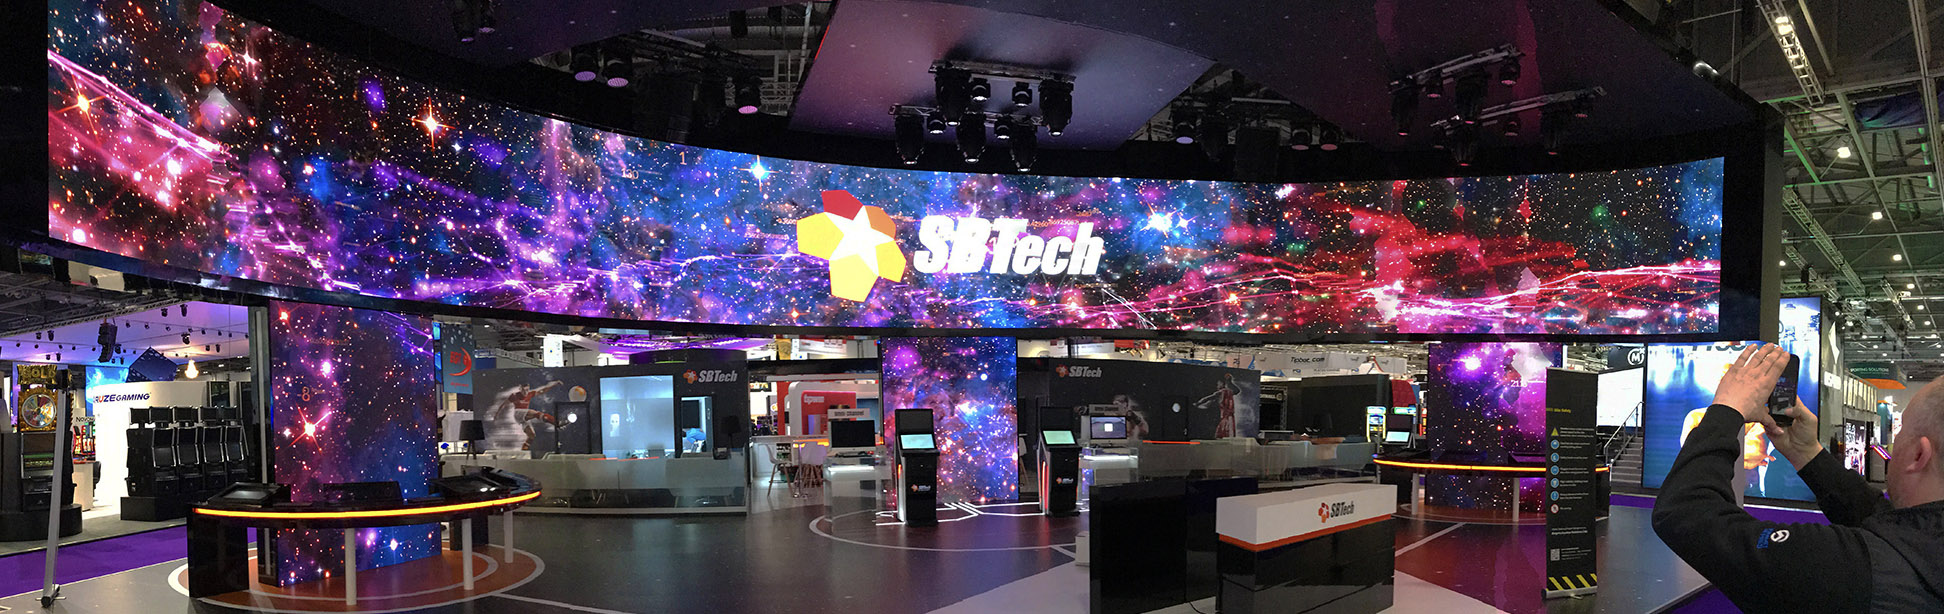 Exhibition Stand Hire Kent : Yslv led screen hire big screen hire event av exhibition